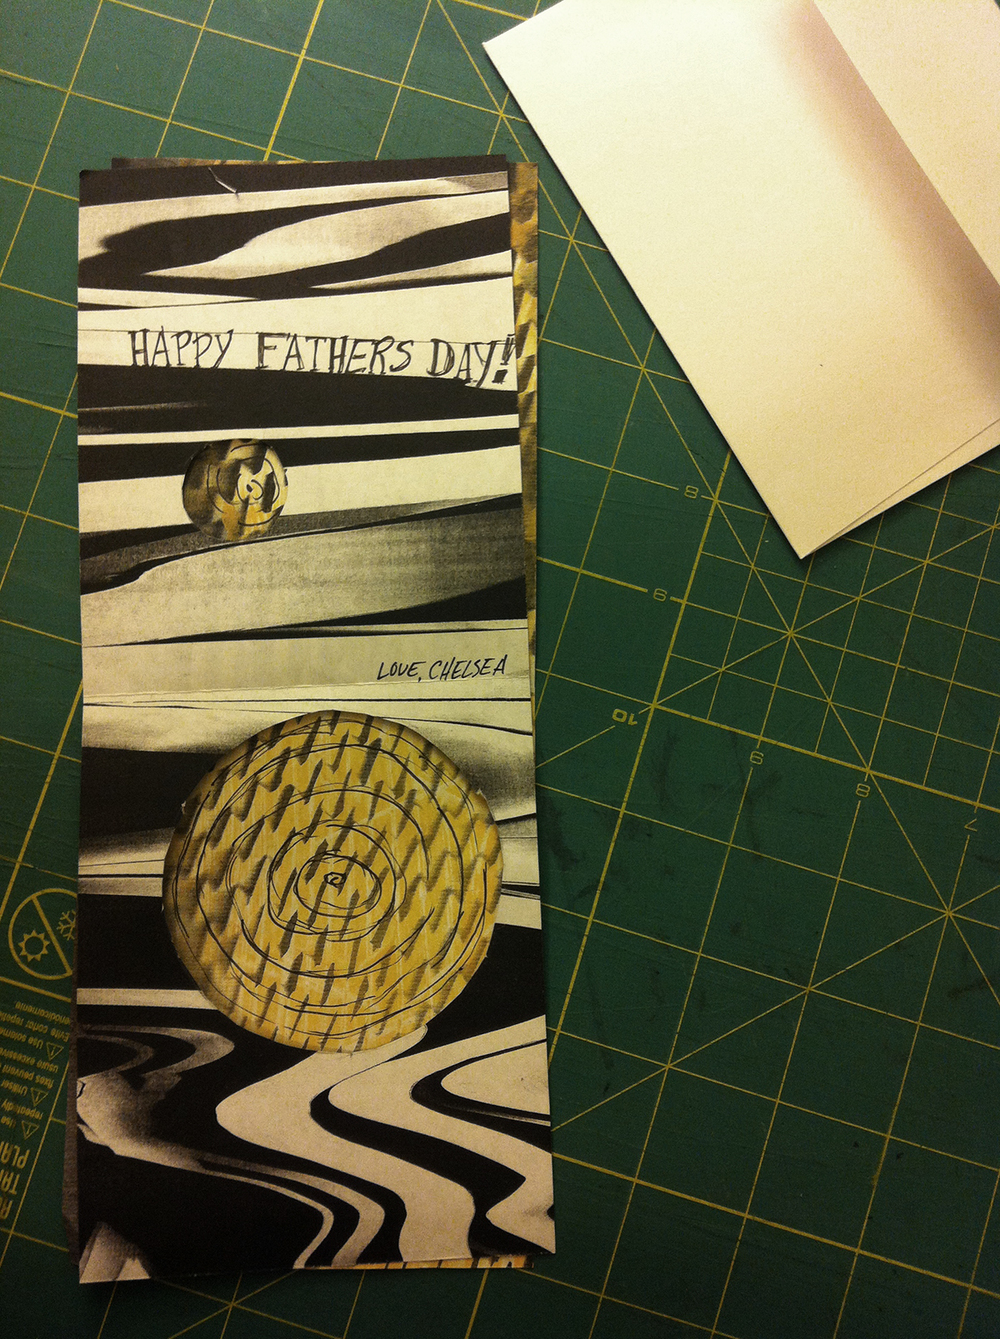 June 14: Bad lettering, but dad won't mind. Happy almost Father's Day!